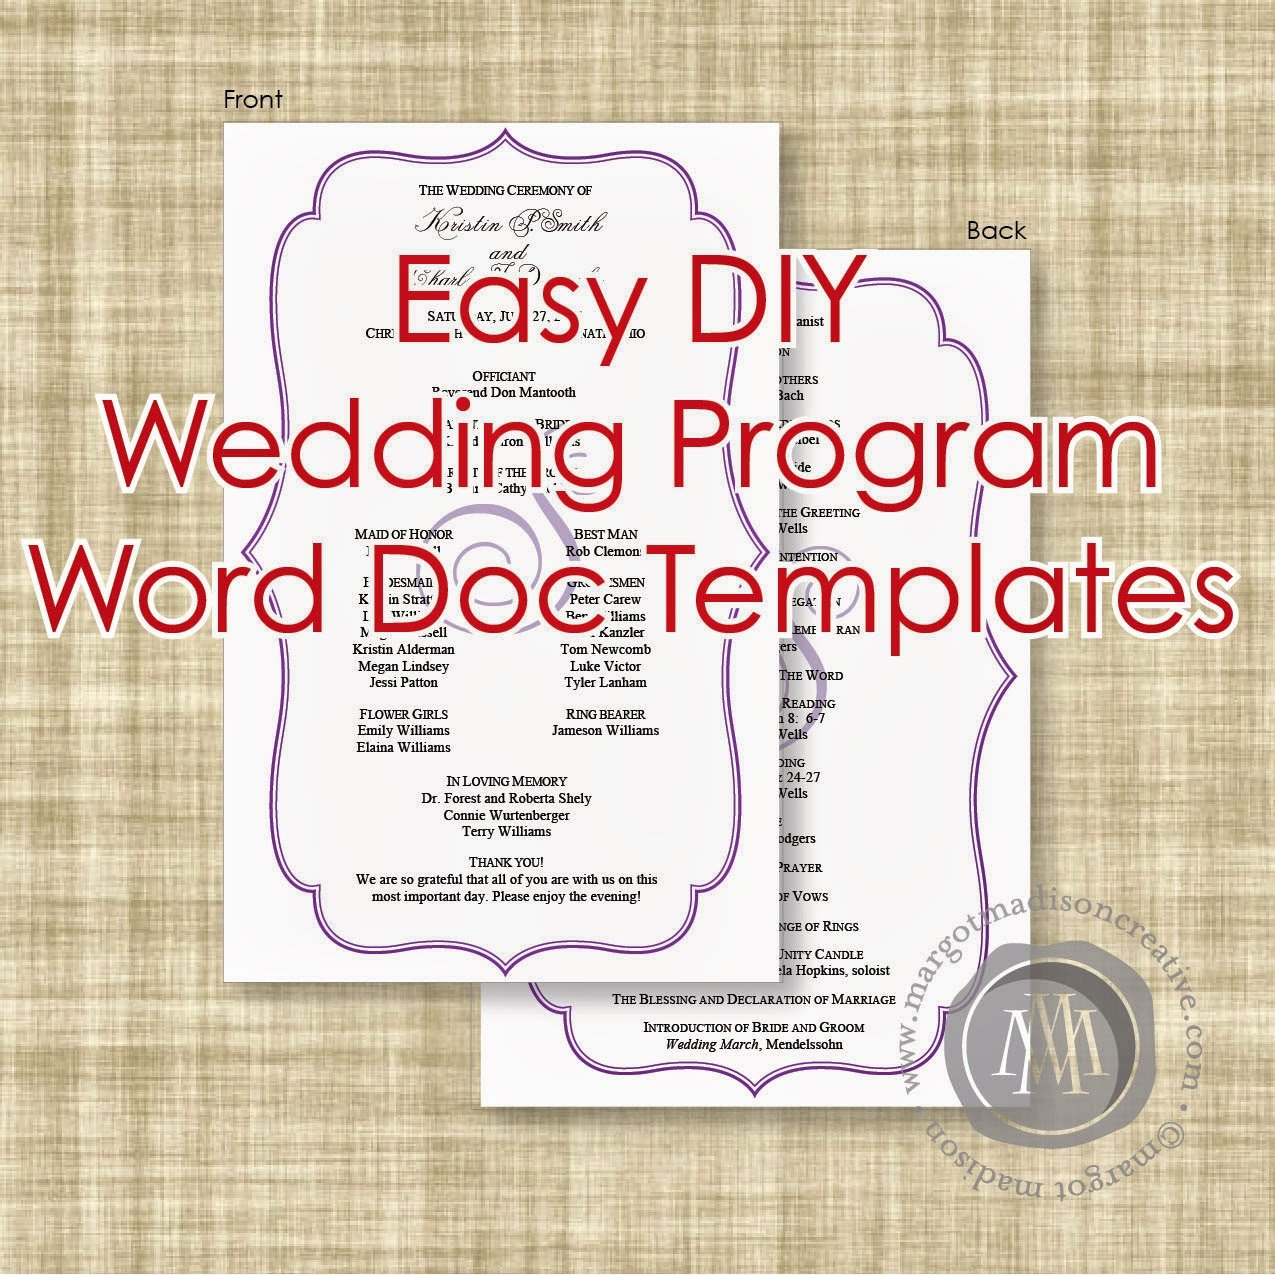 Margotmadison Diy Wedding Program Word Doc Templates now